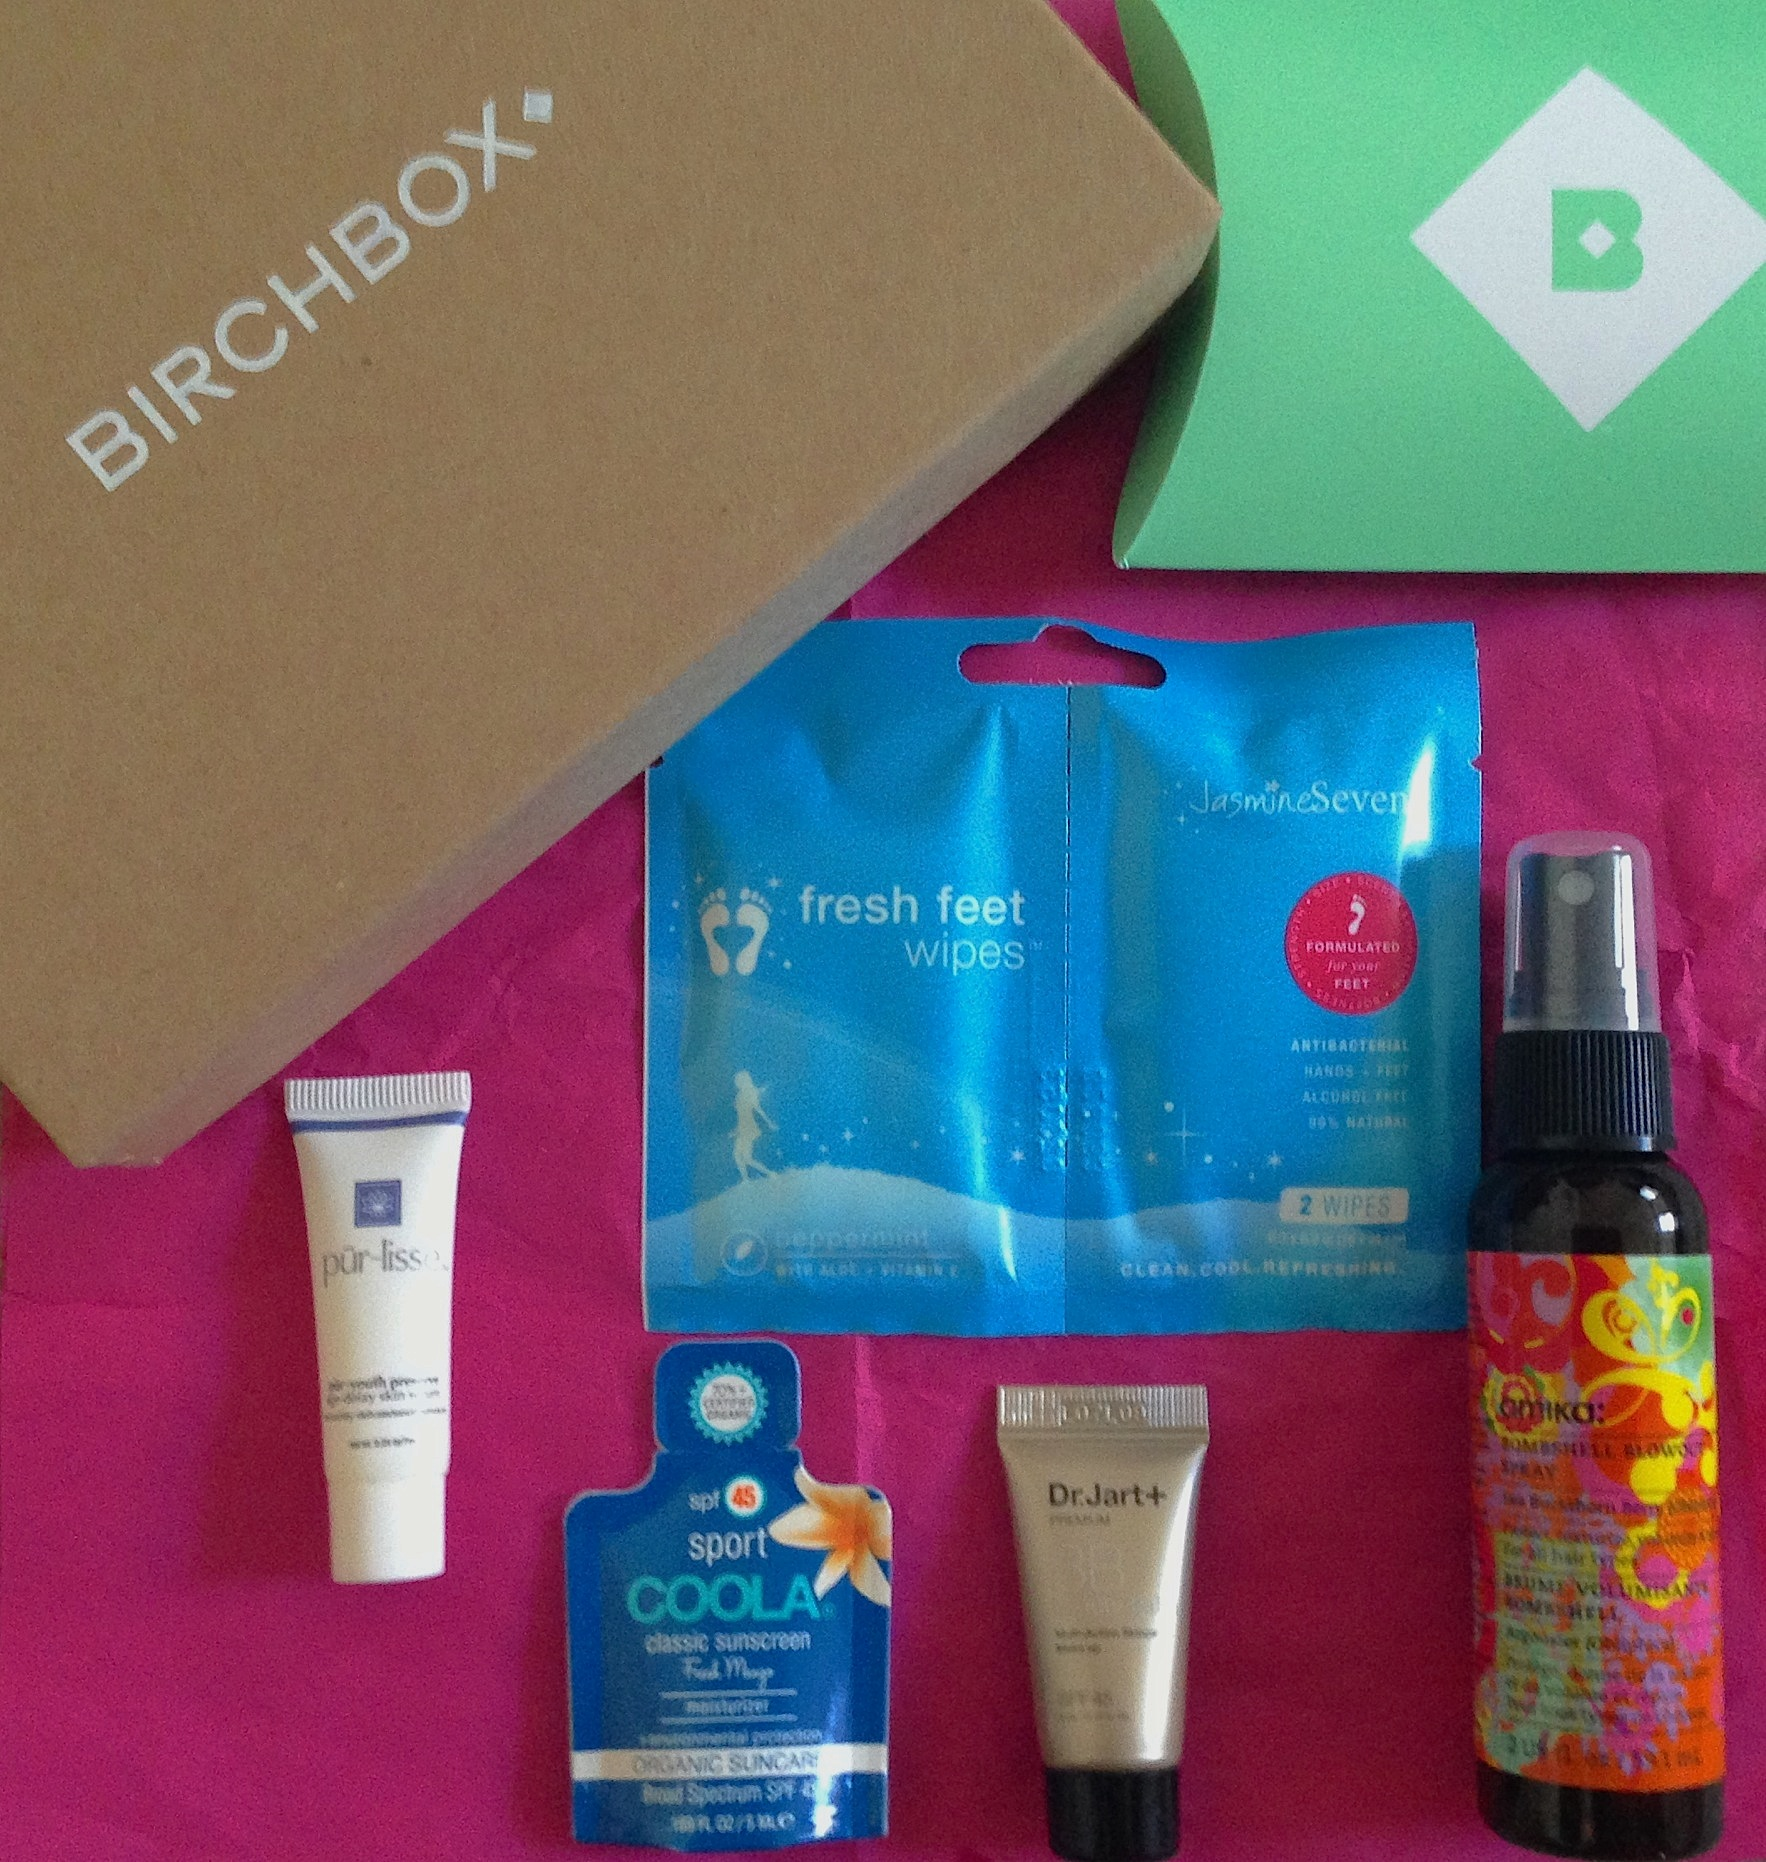 I Received A Birchbox Subscription As Gift For My Birthday And First One Arrived Yesterday It Was Fun Surprise To Come Home After Week In LA